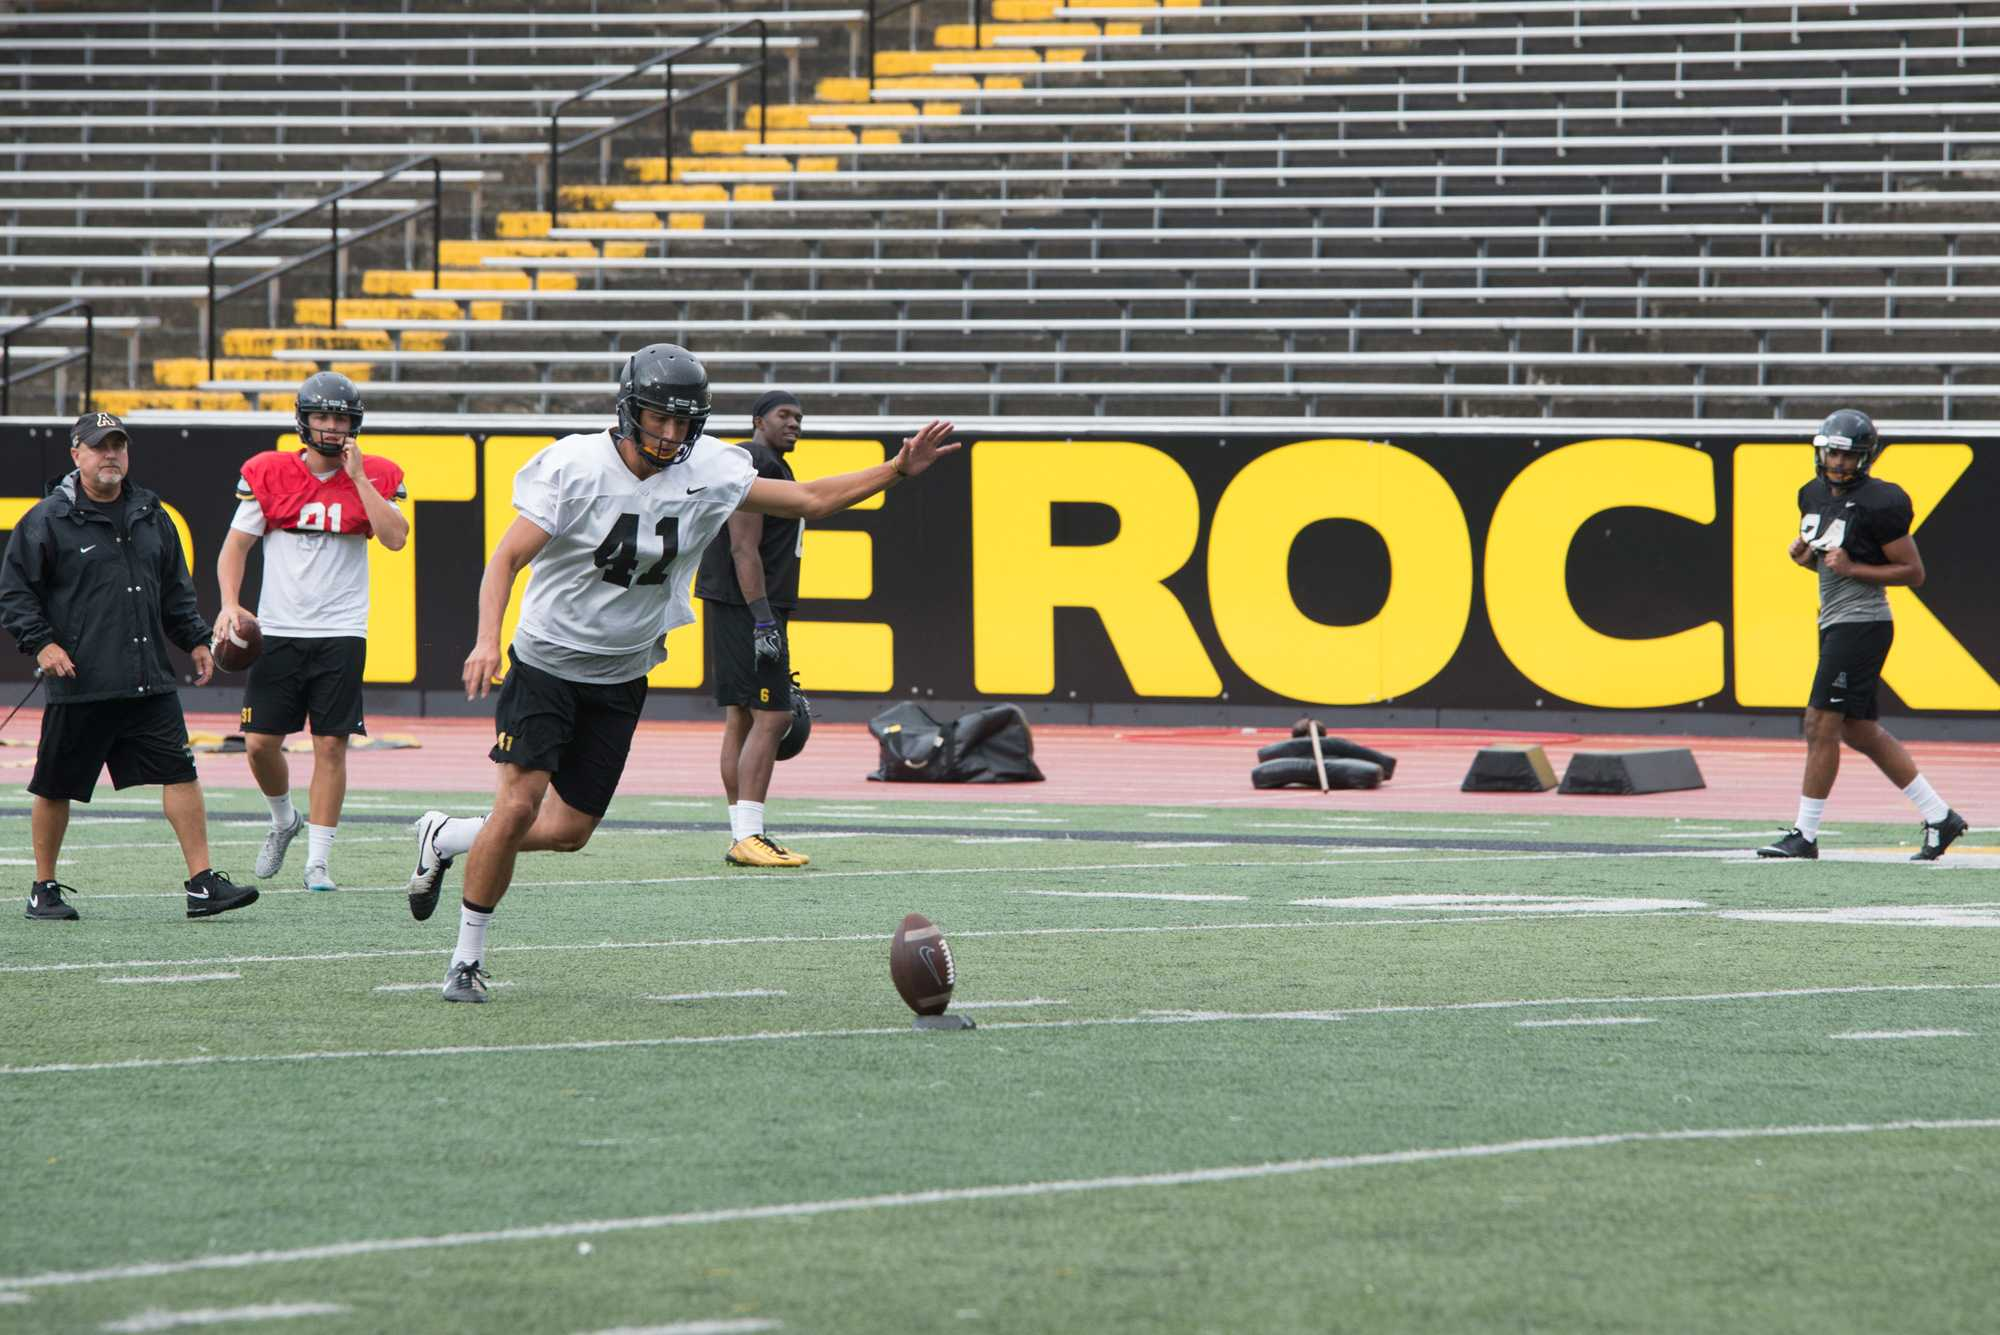 Place kicker Michael Rubino works on his kick during the football team's practice on Wednesday, August 17th, 2016.